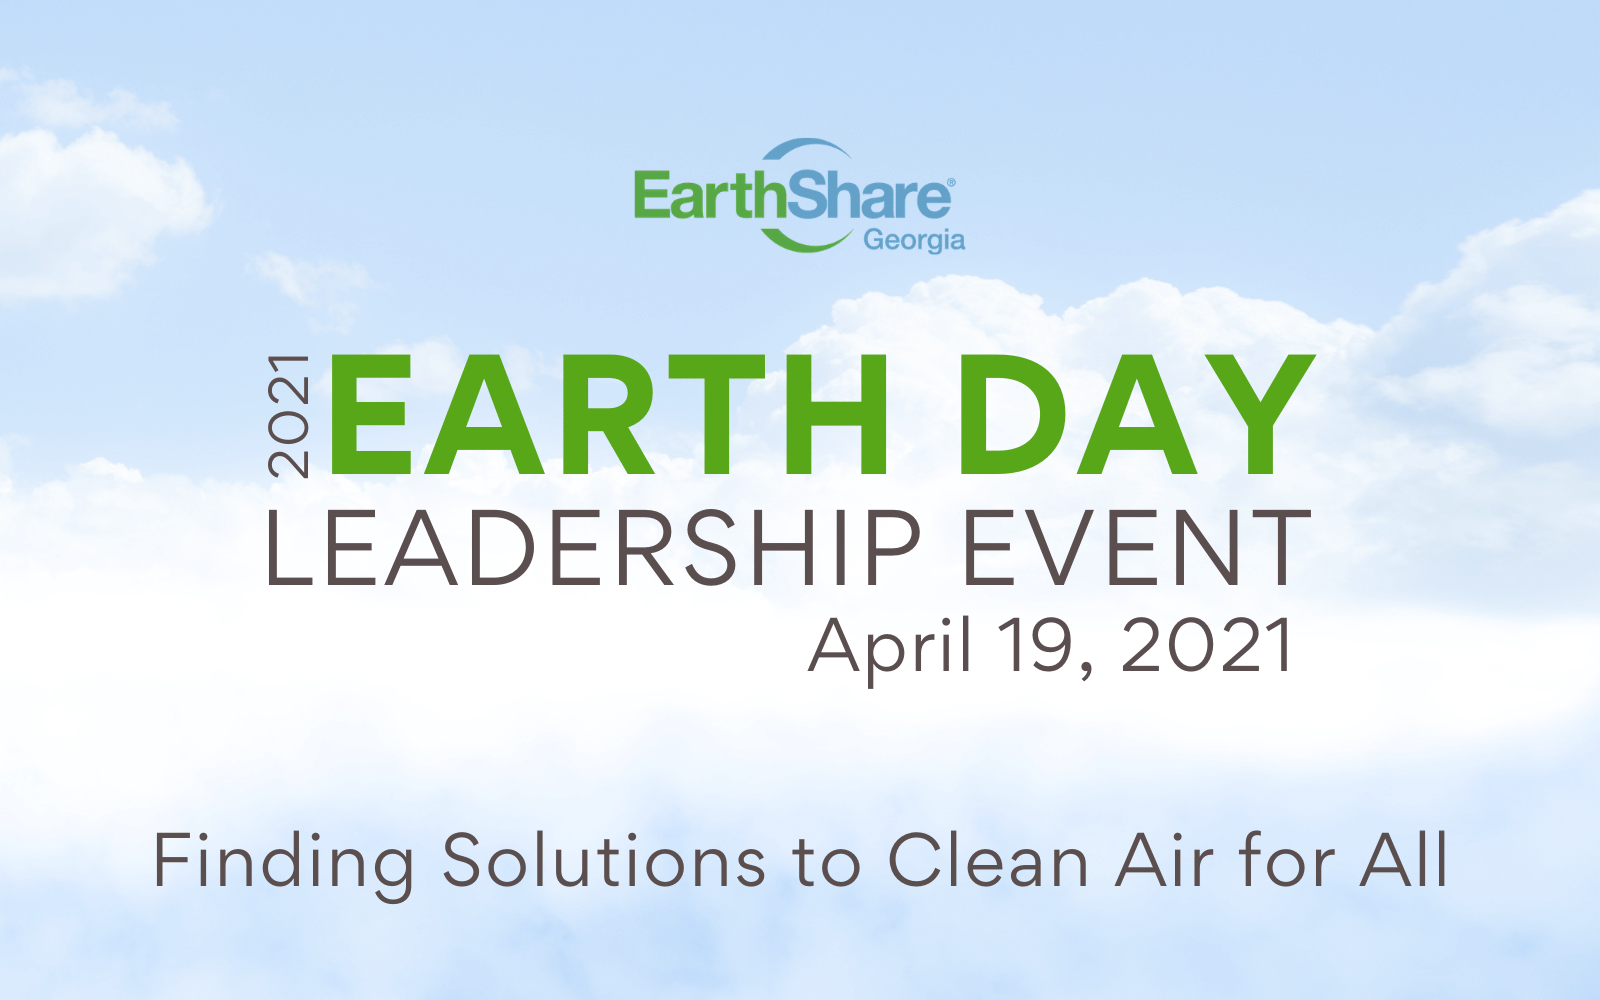 2021 Earth Day Leadership Event image